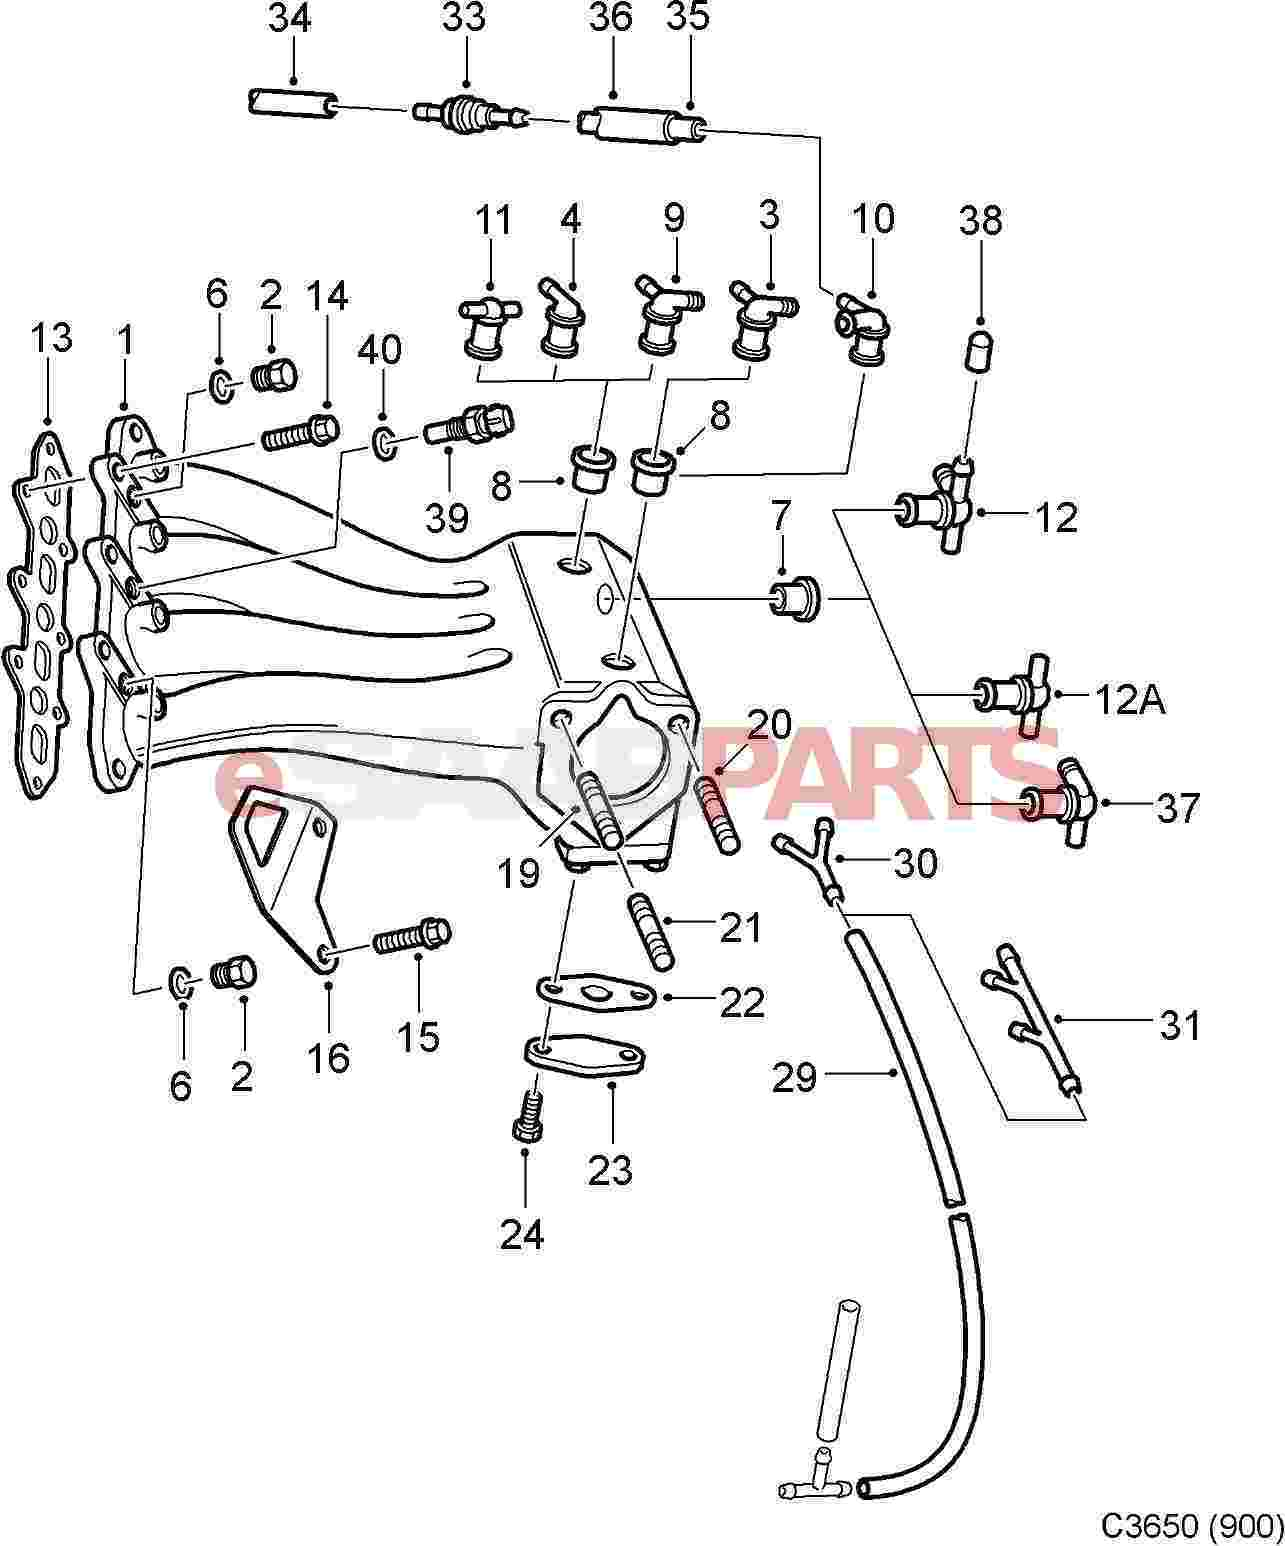 1988 Chrysler Lebaron Engine Diagram. Chrysler. Auto